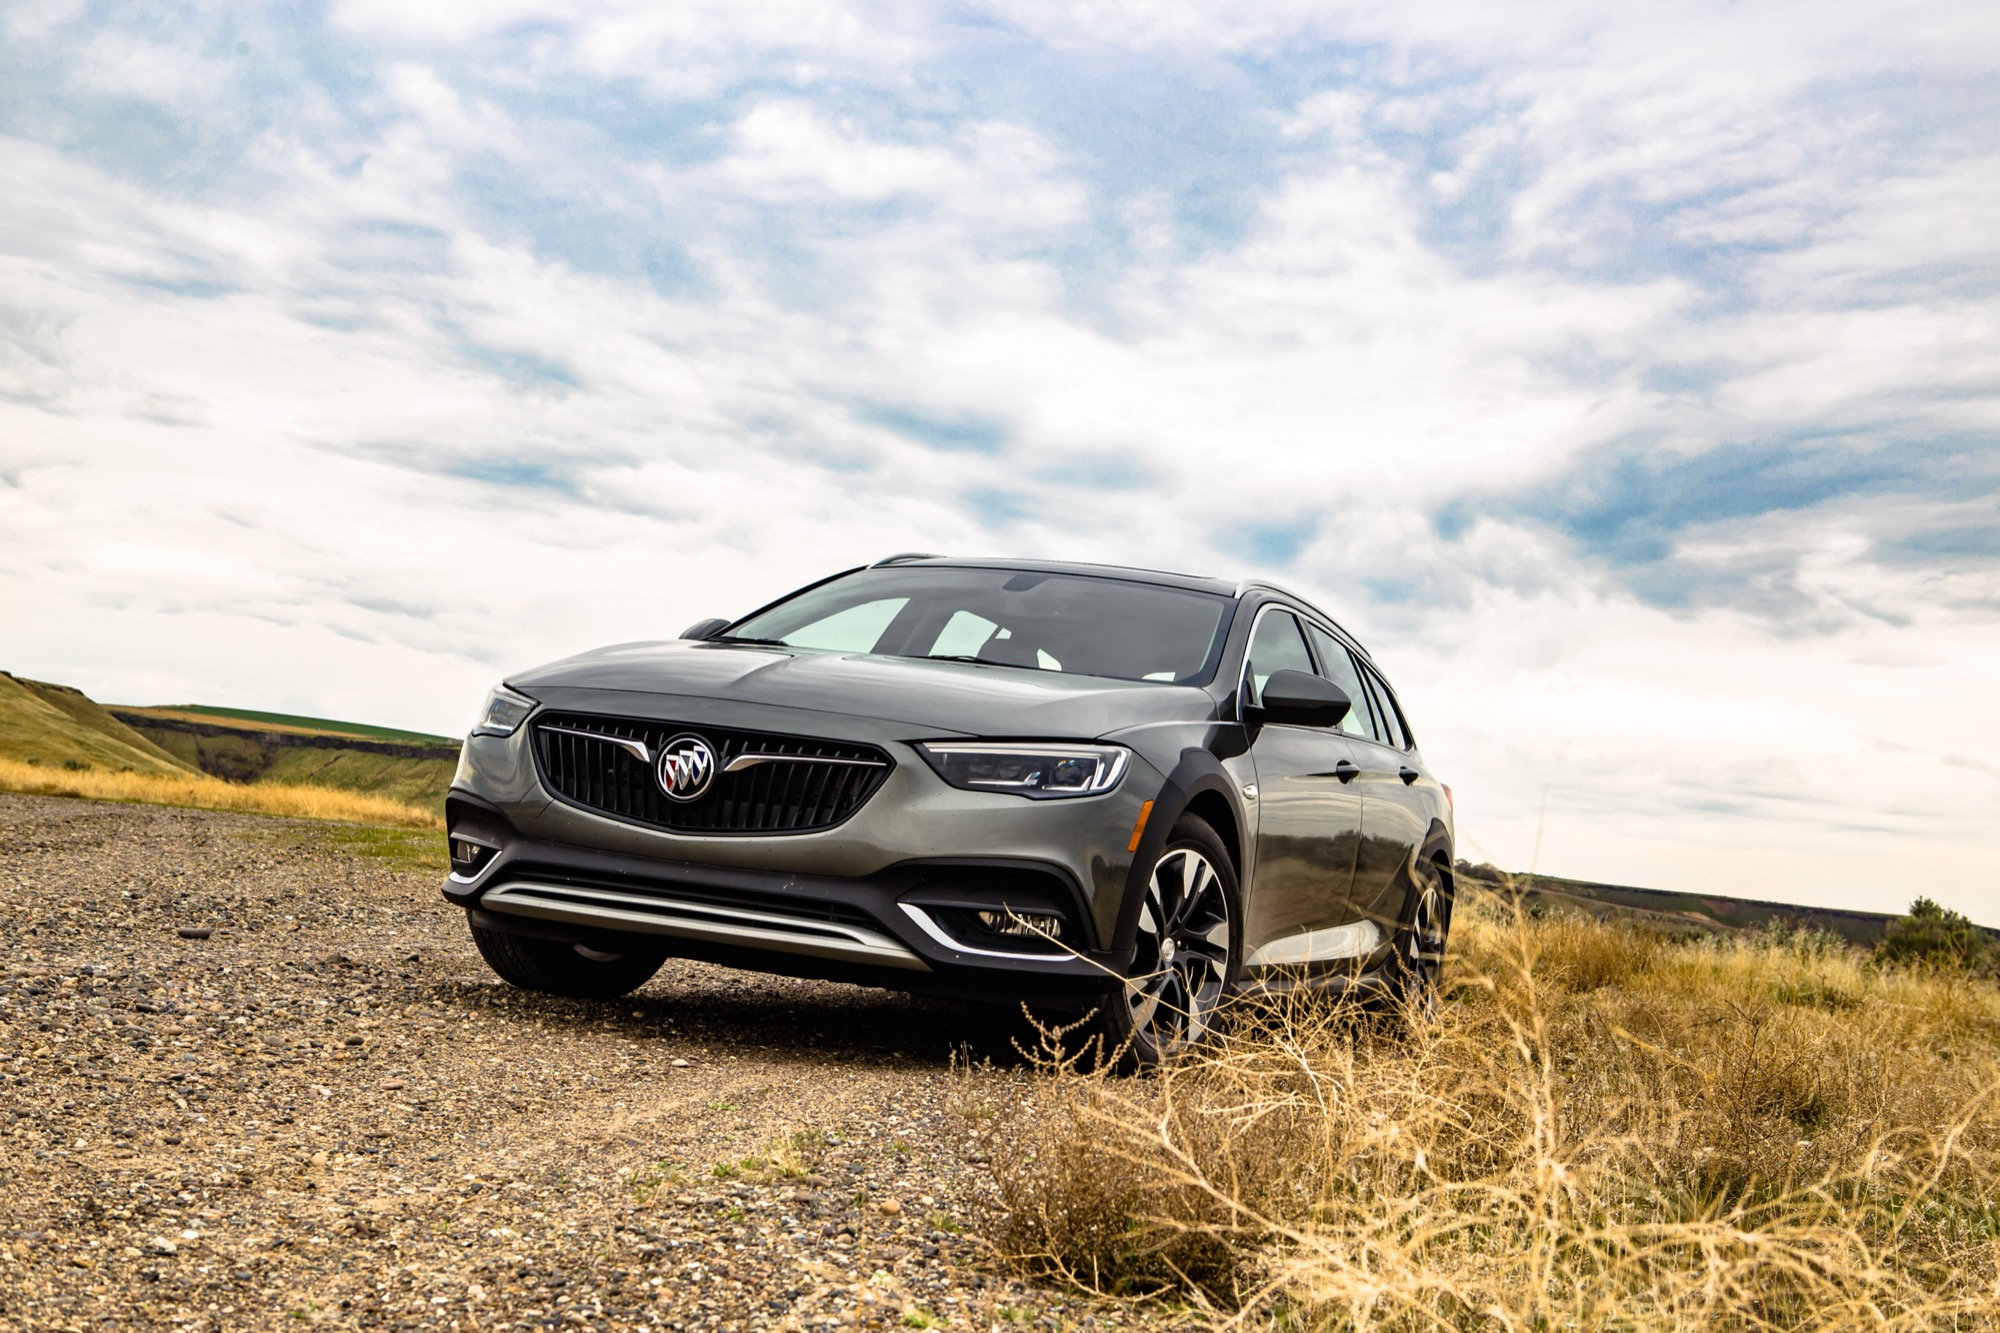 Buick Regal Discount Totals $6,250 In February 2020 | Gm New 2022 Buick Regal Specs, Price, 0-60